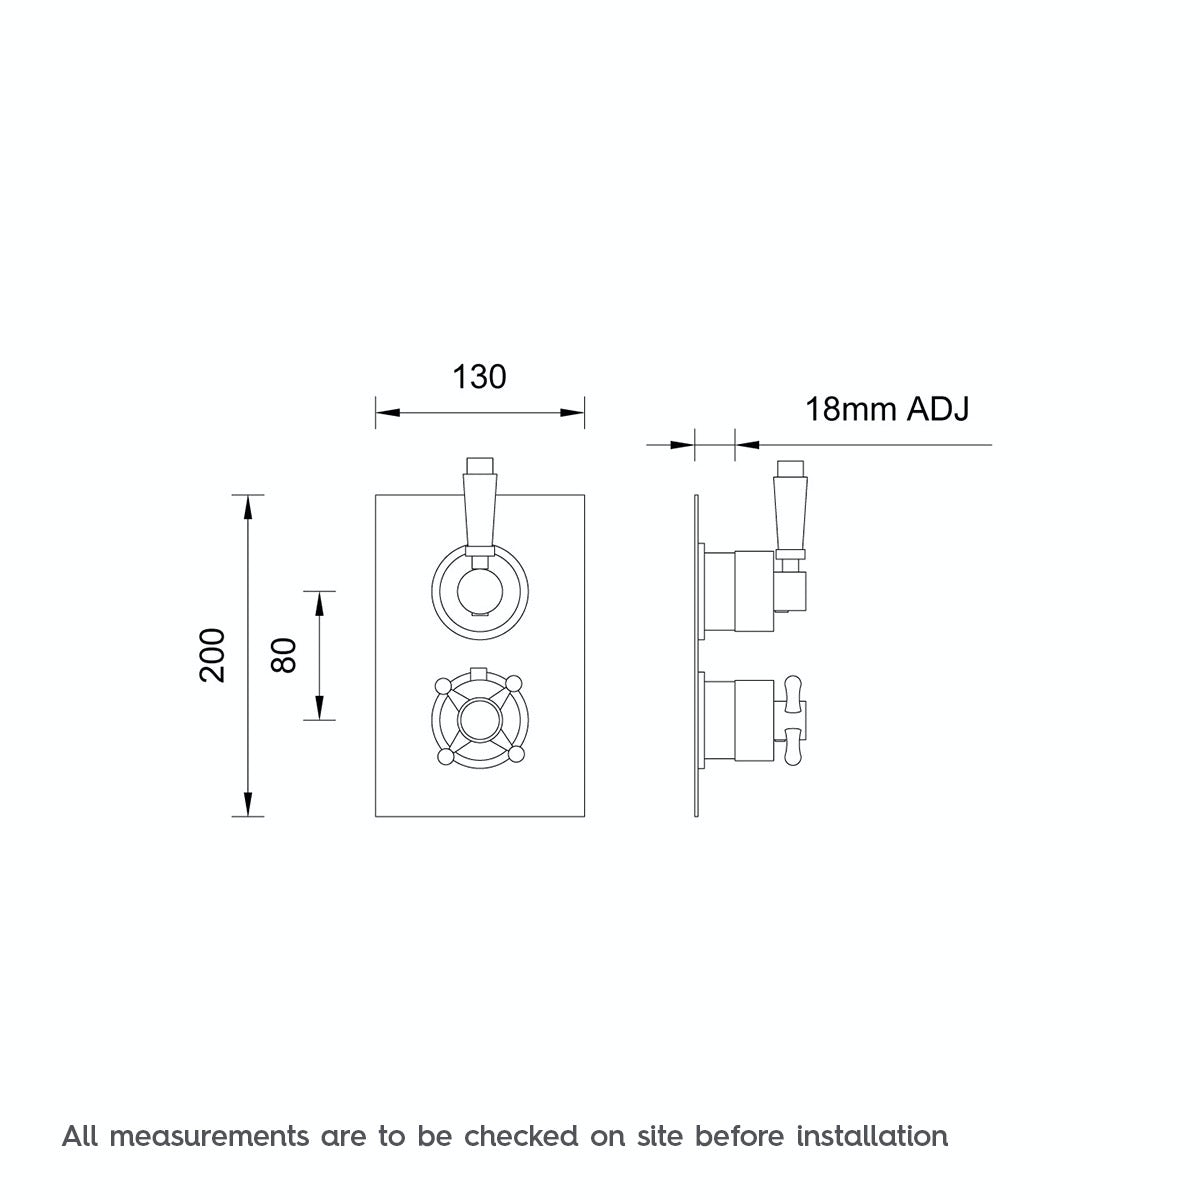 Dimensions for The Bath Co. Traditional square twin thermostatic shower valve